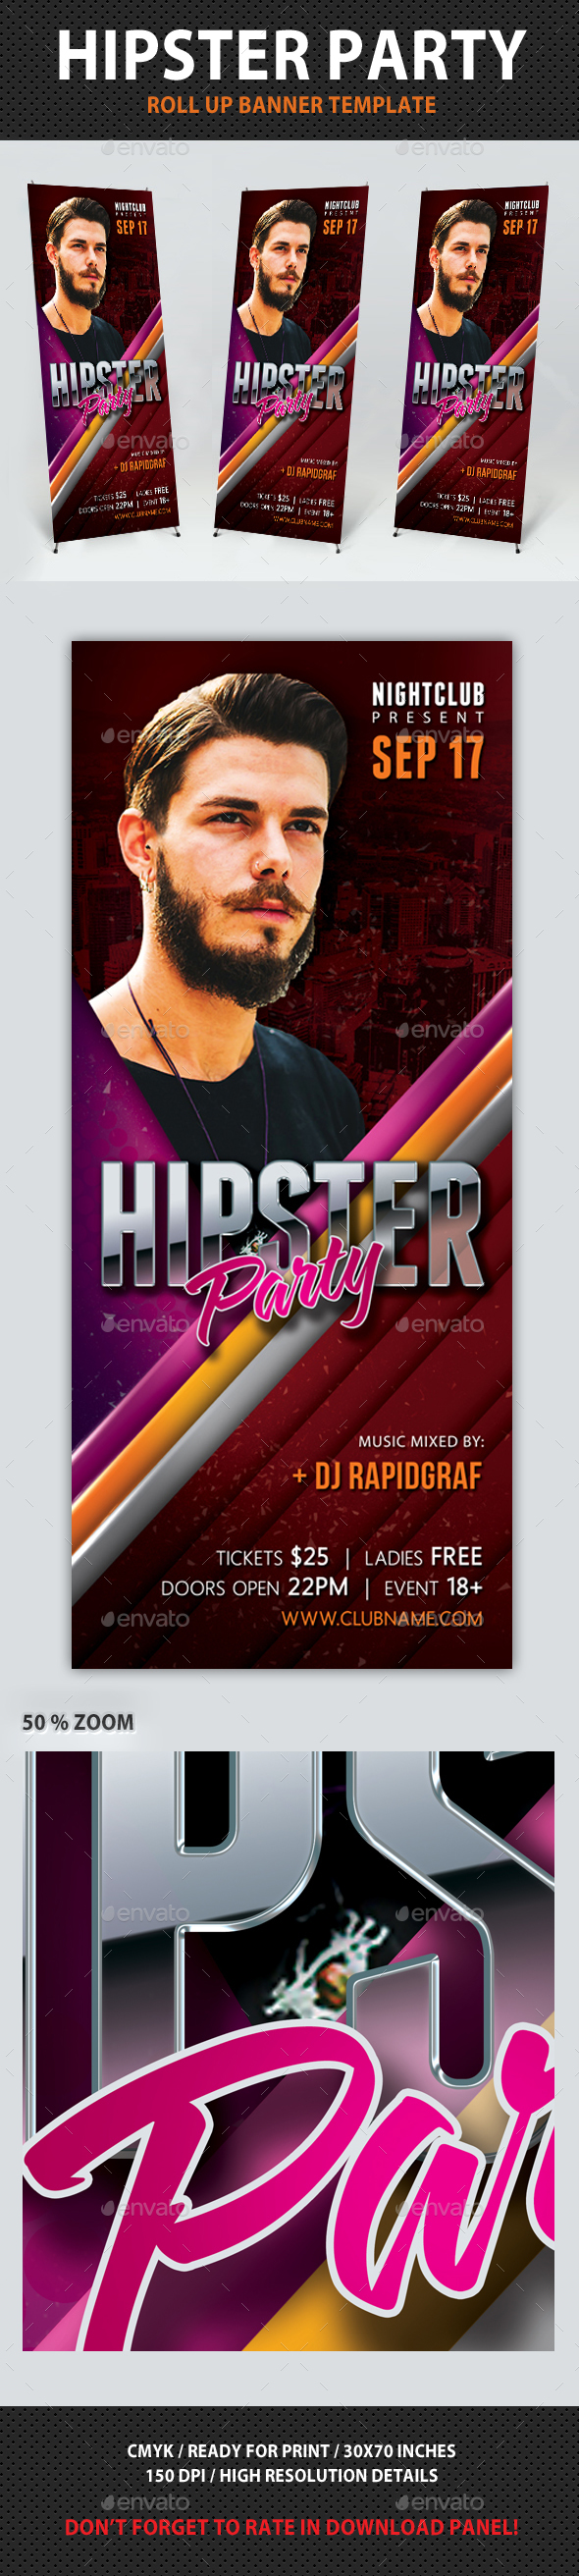 Hipster Party Roll-Up Banner - Signage Print Templates